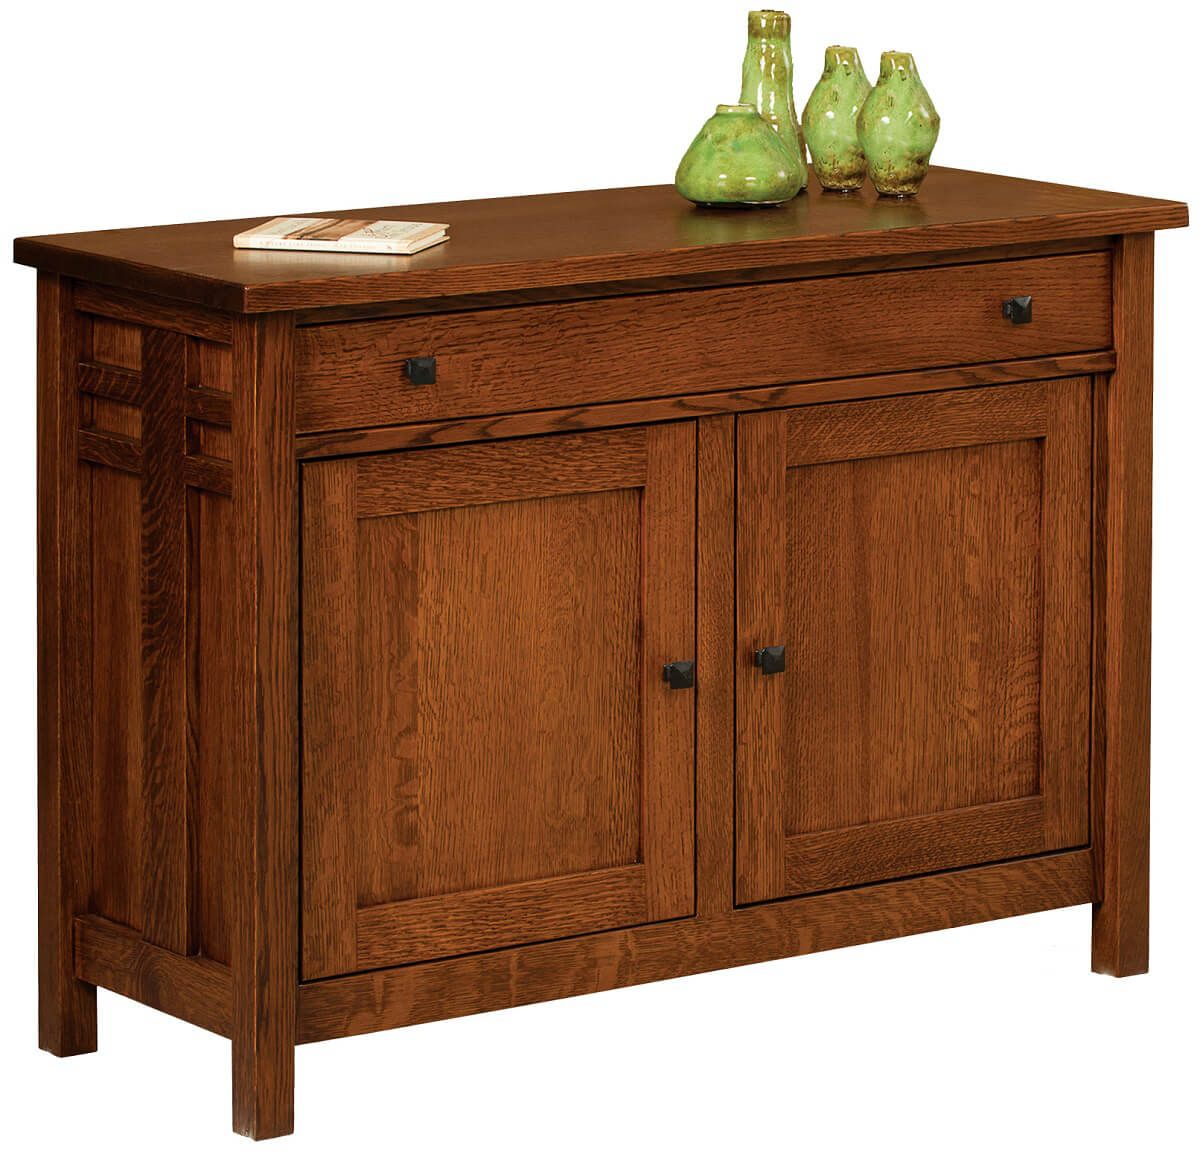 sofa table storage real simple beds alvarado with countryside amish furniture